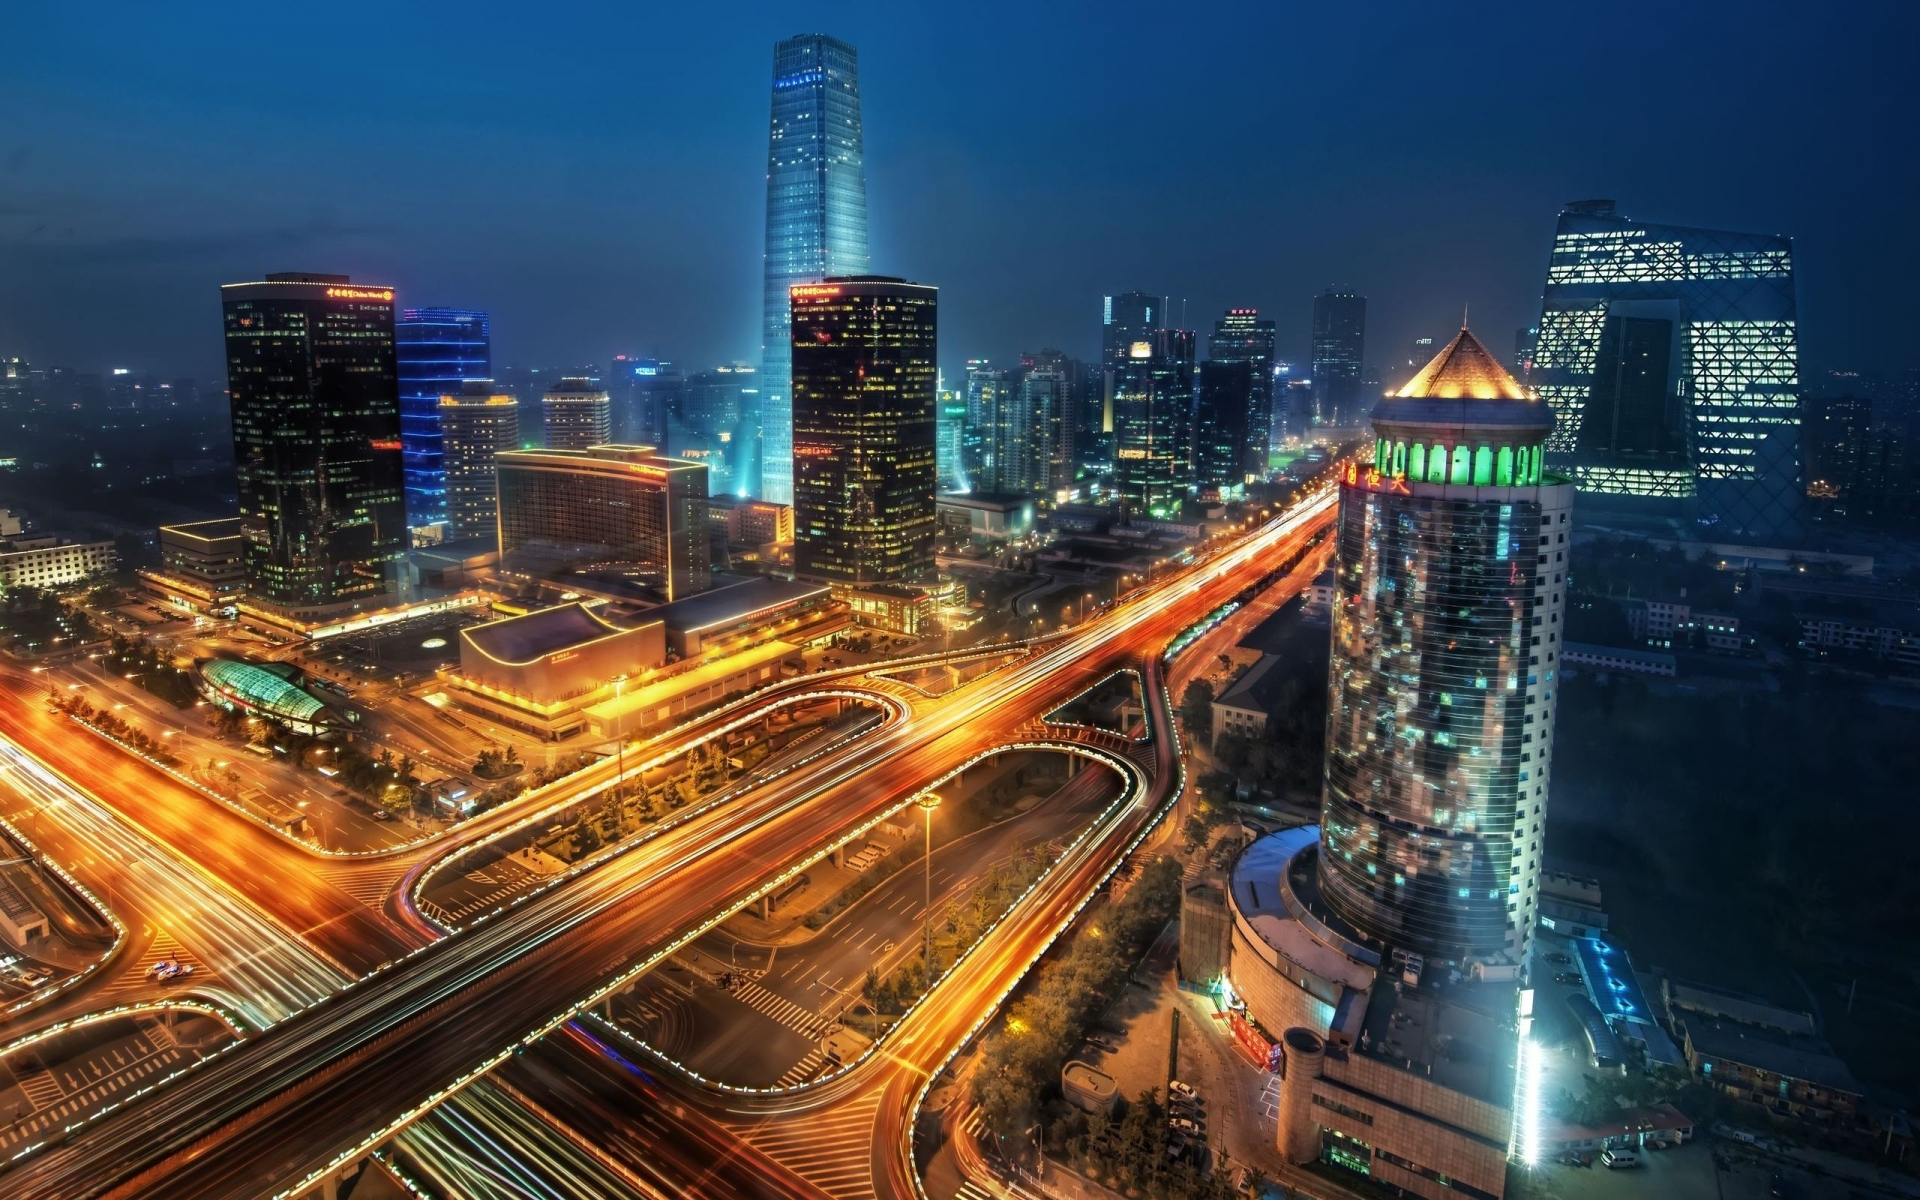 10-most-impressive-smart-cities-on-earth-image-3